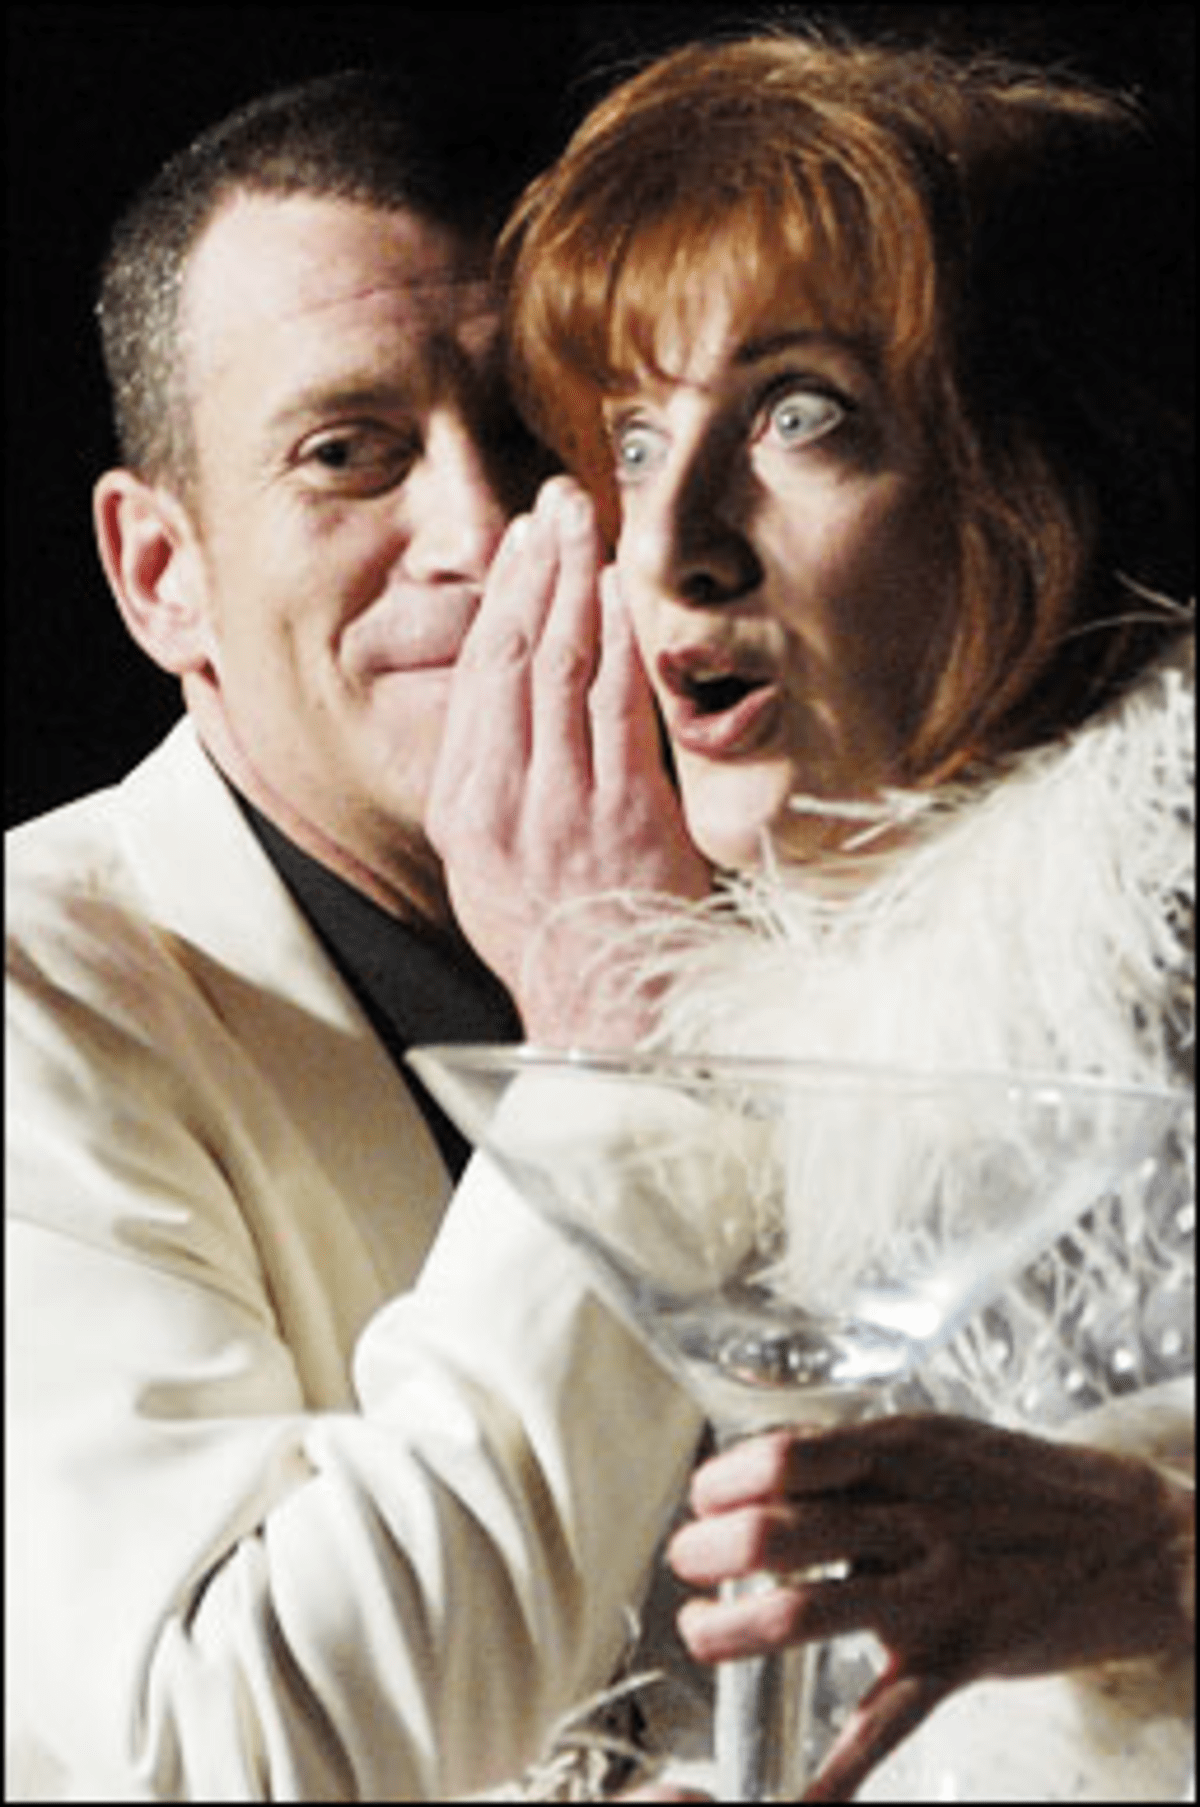 Hitting the Saucy: Musical?s a glass act.